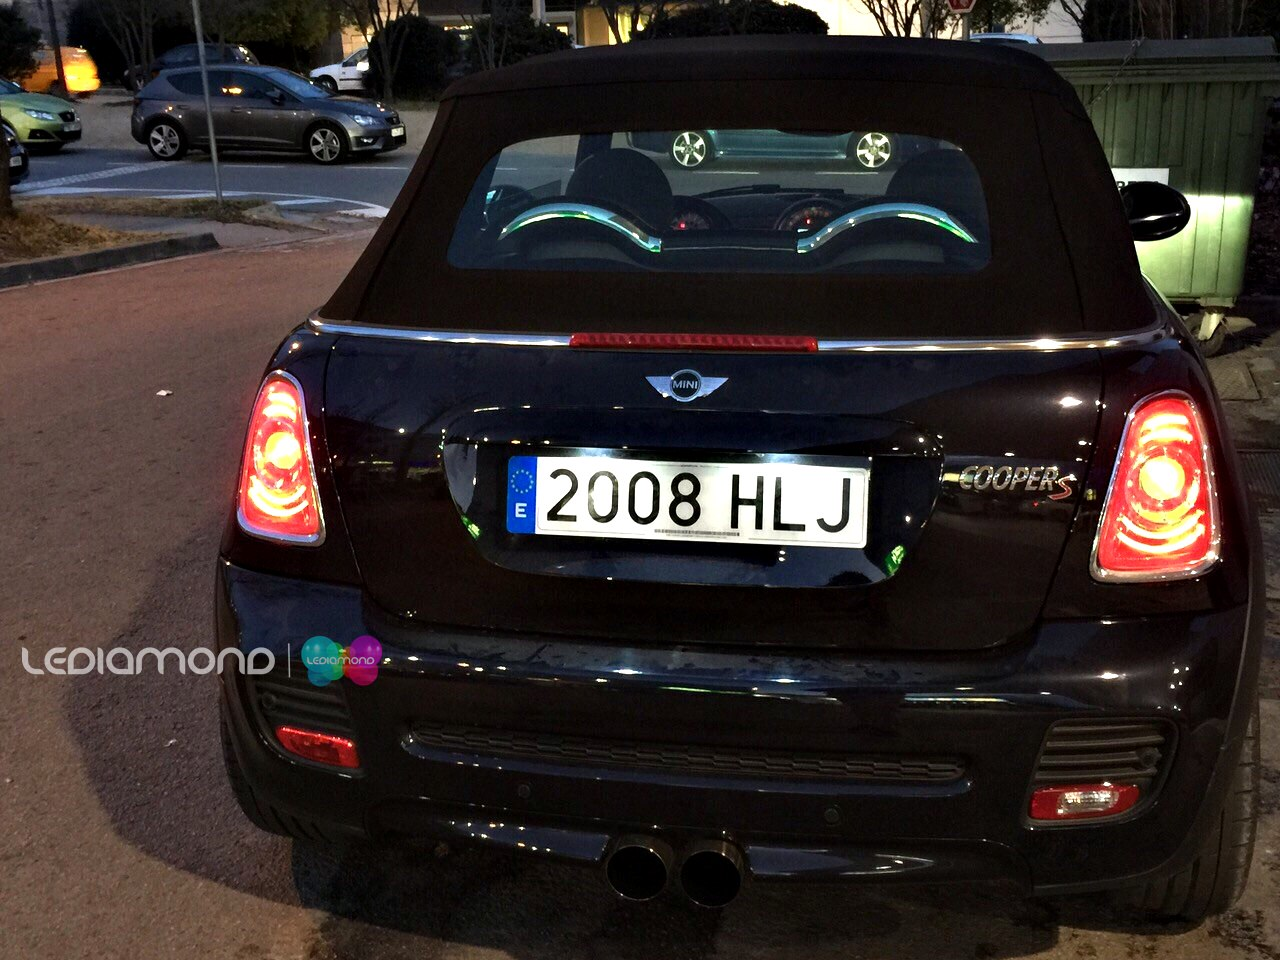 PLAFONES LED MATRICULA MINI LEDIAMOND